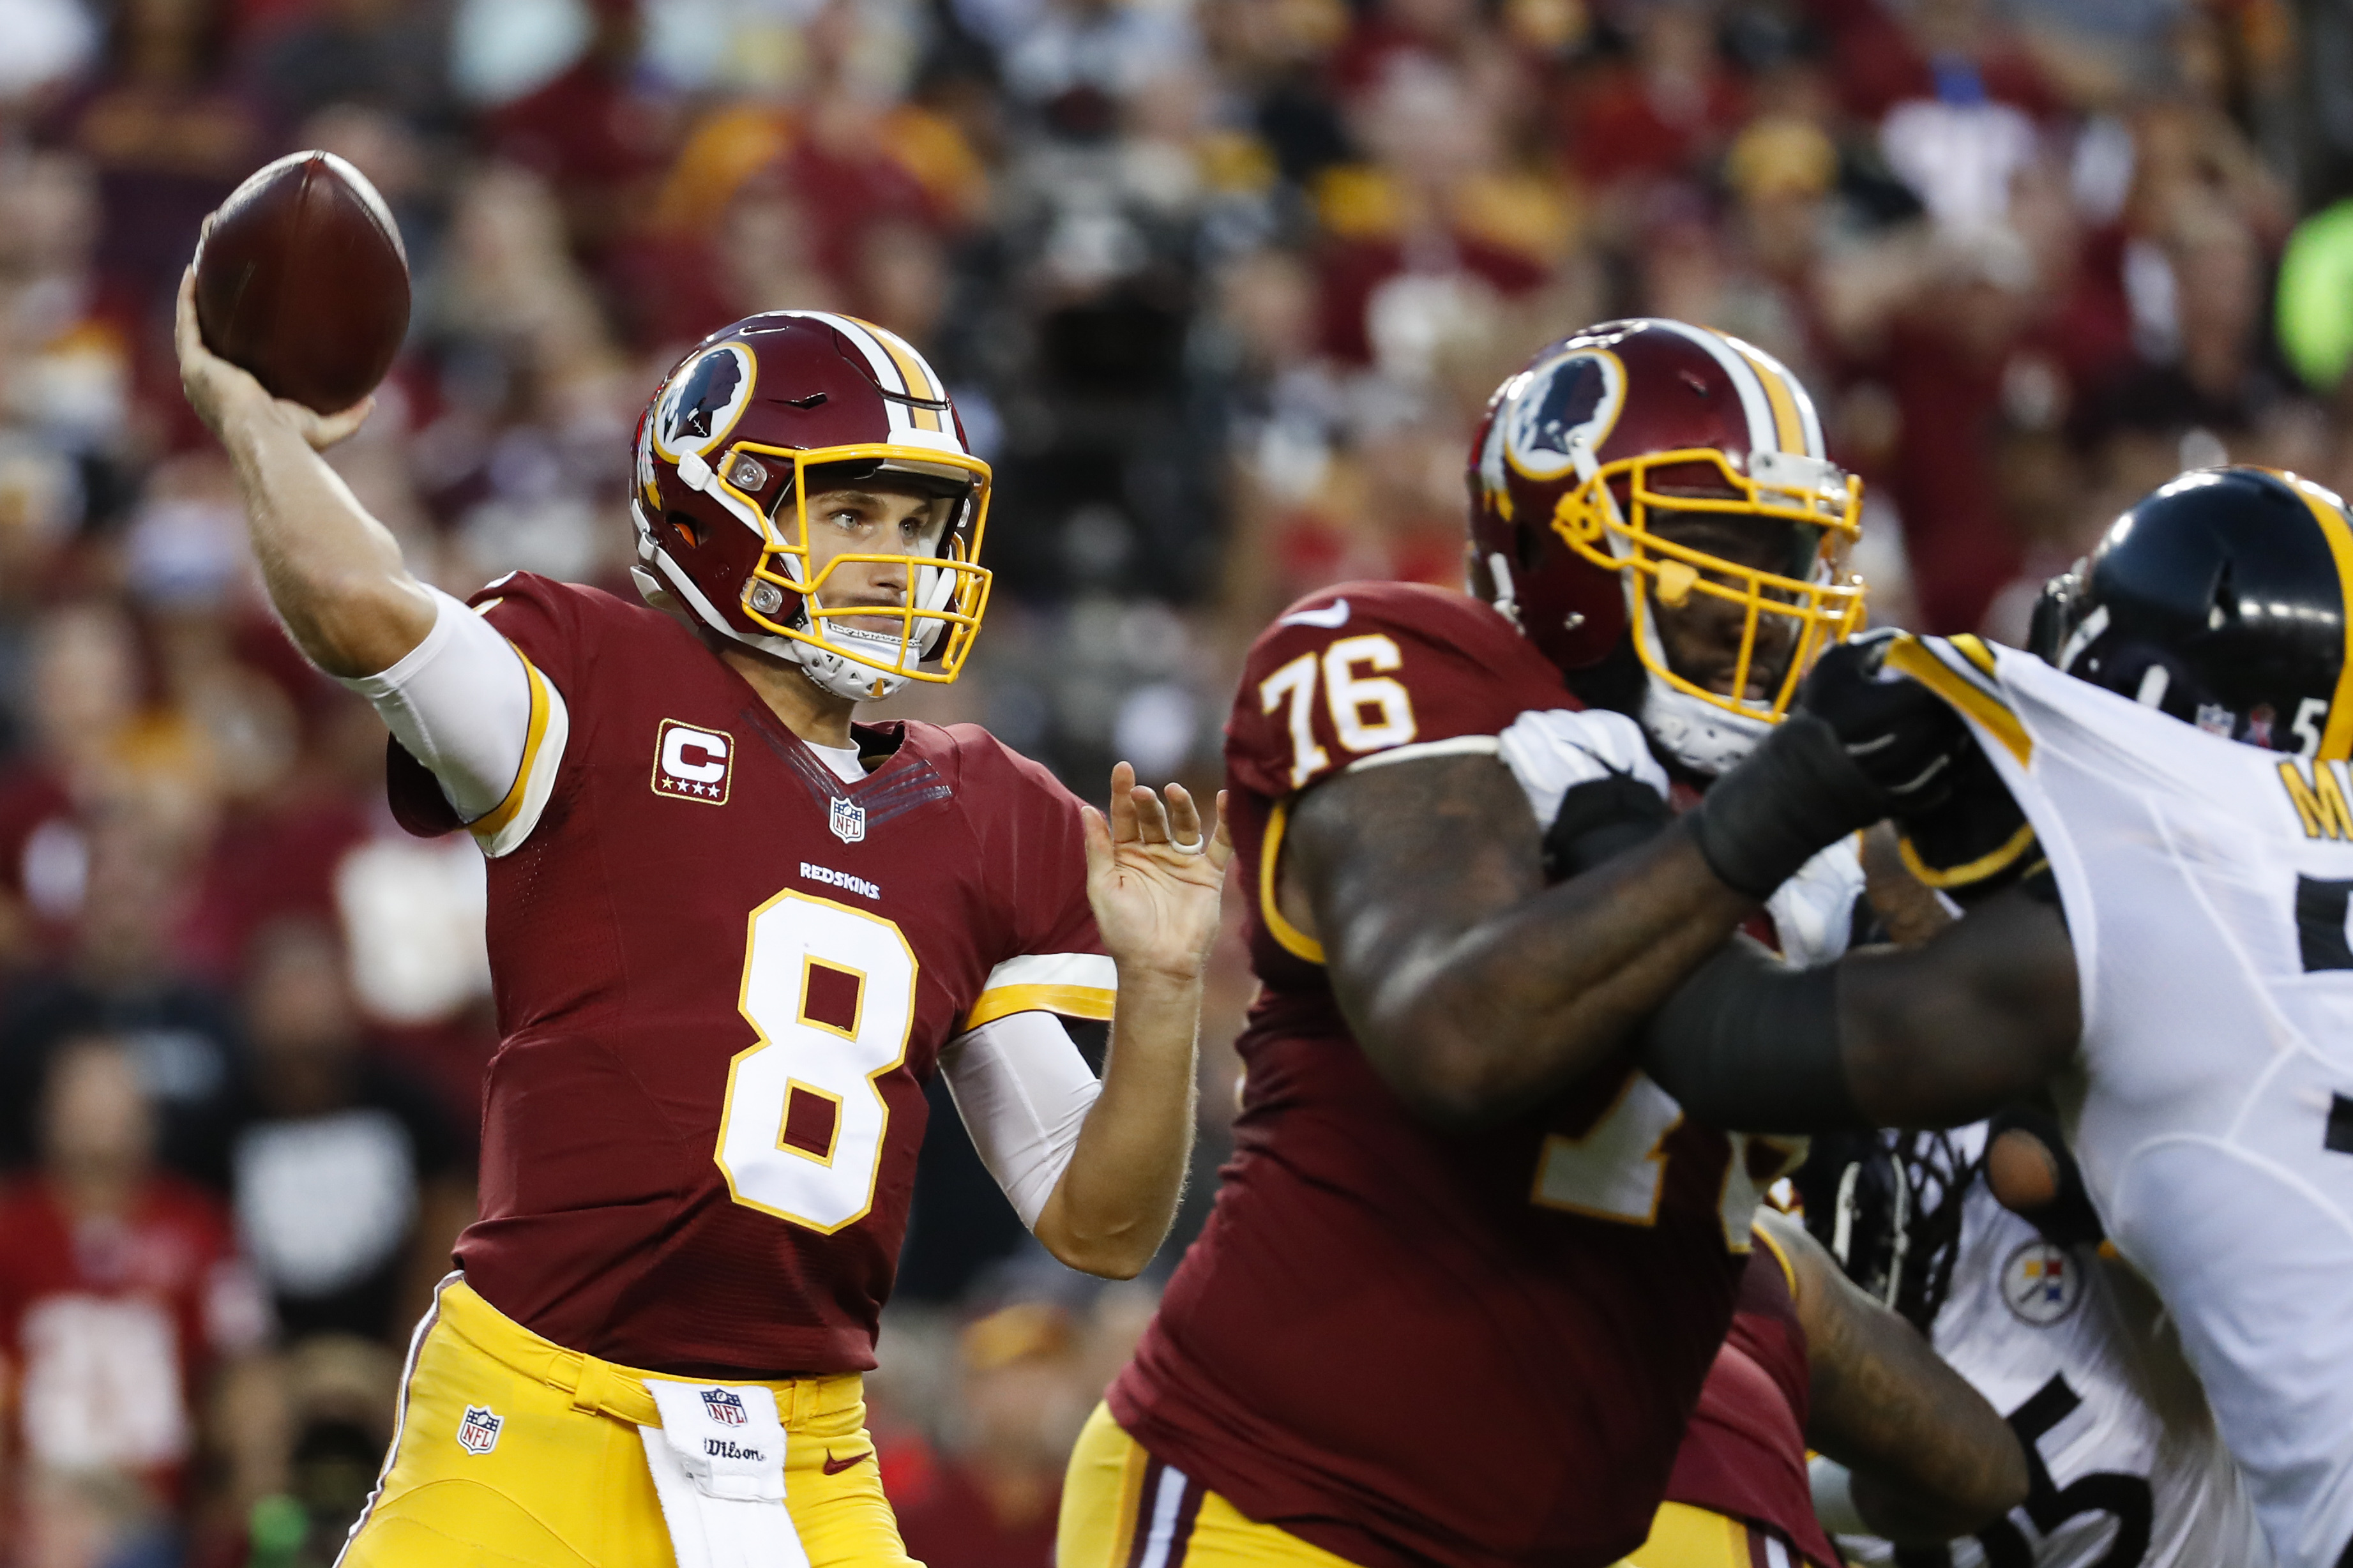 Washington Redskins quarterback Kirk Cousins (8) passes the ball during the first half of an NFL football game against the Pittsburgh Steelers in Landover, Md., Monday, Sept. 12, 2016. (AP Photo/Alex Brandon)